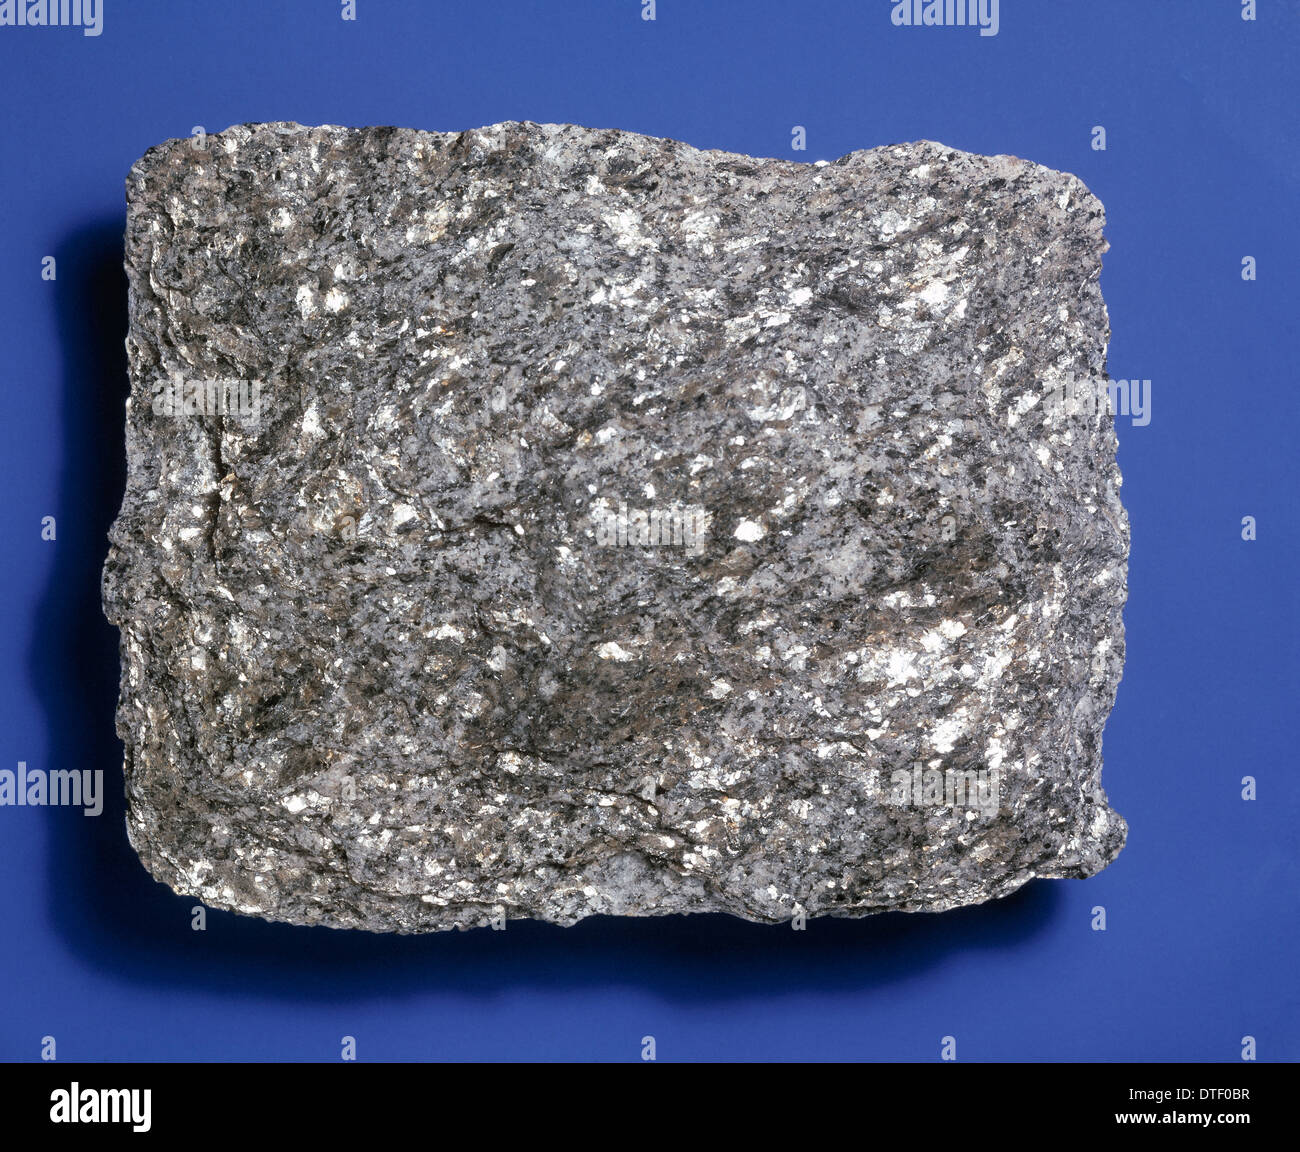 mica schist stock photos mica schist stock images alamy